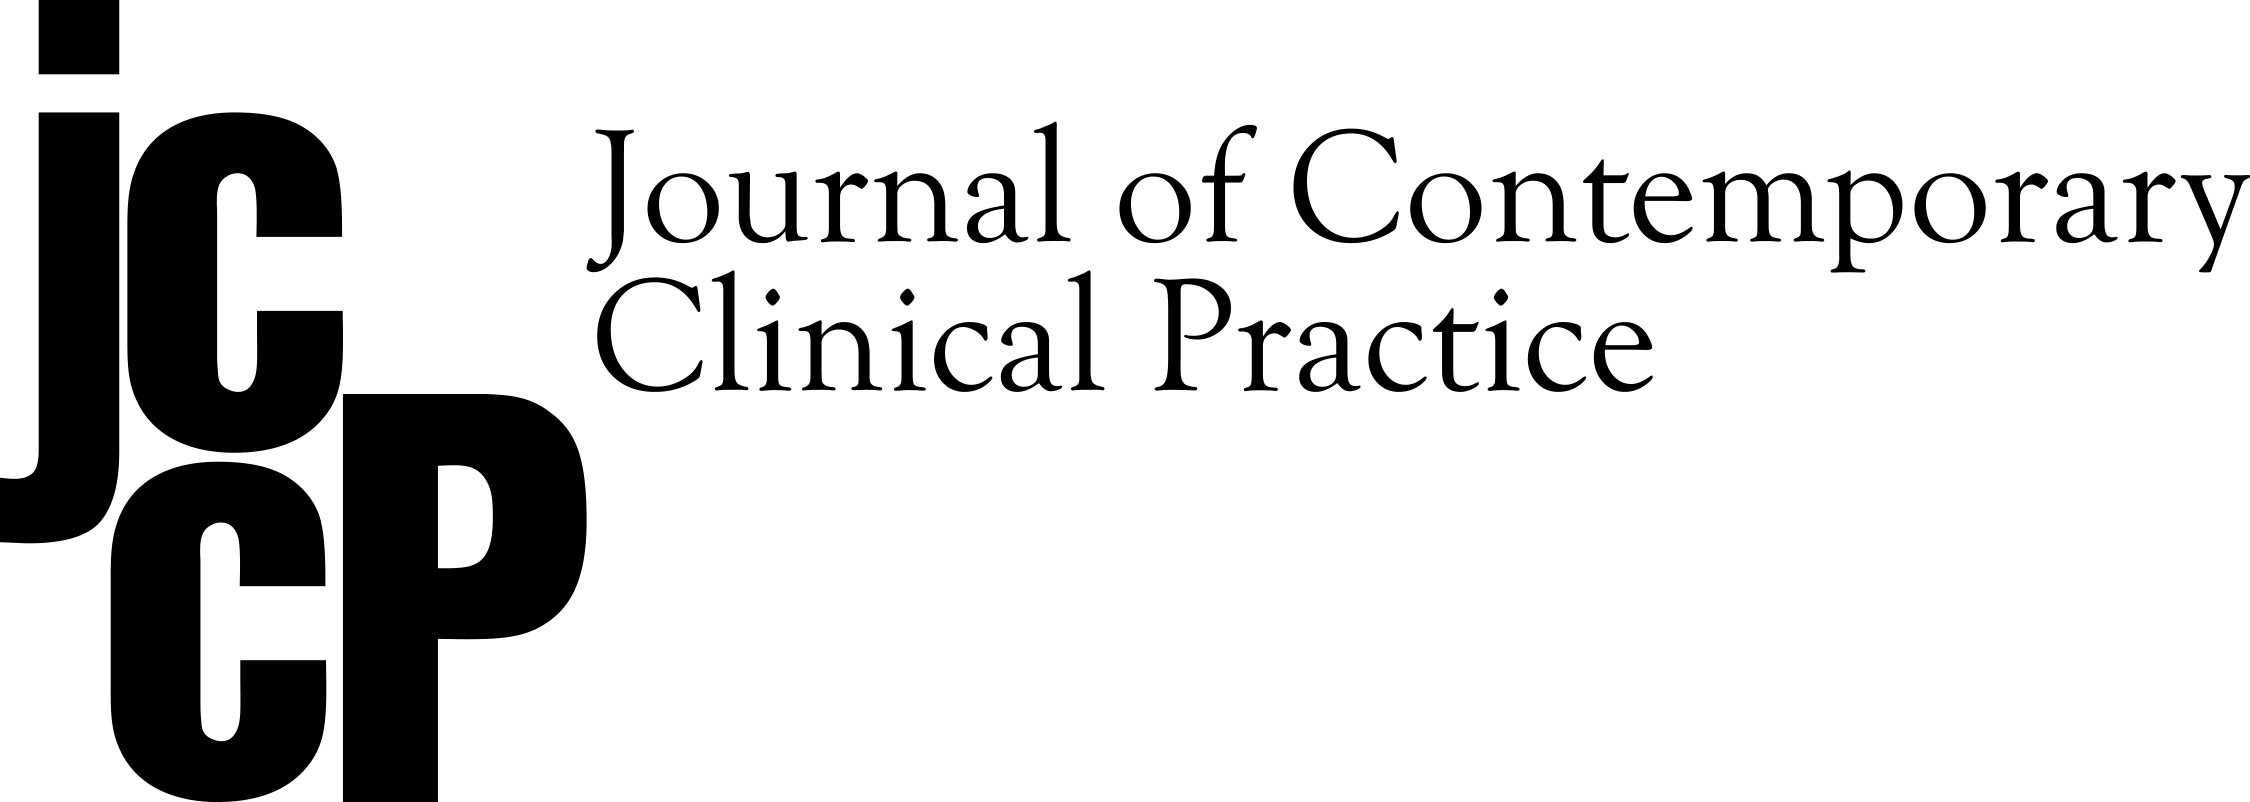 Journal of Contemporary Clinical Practice Cover Image